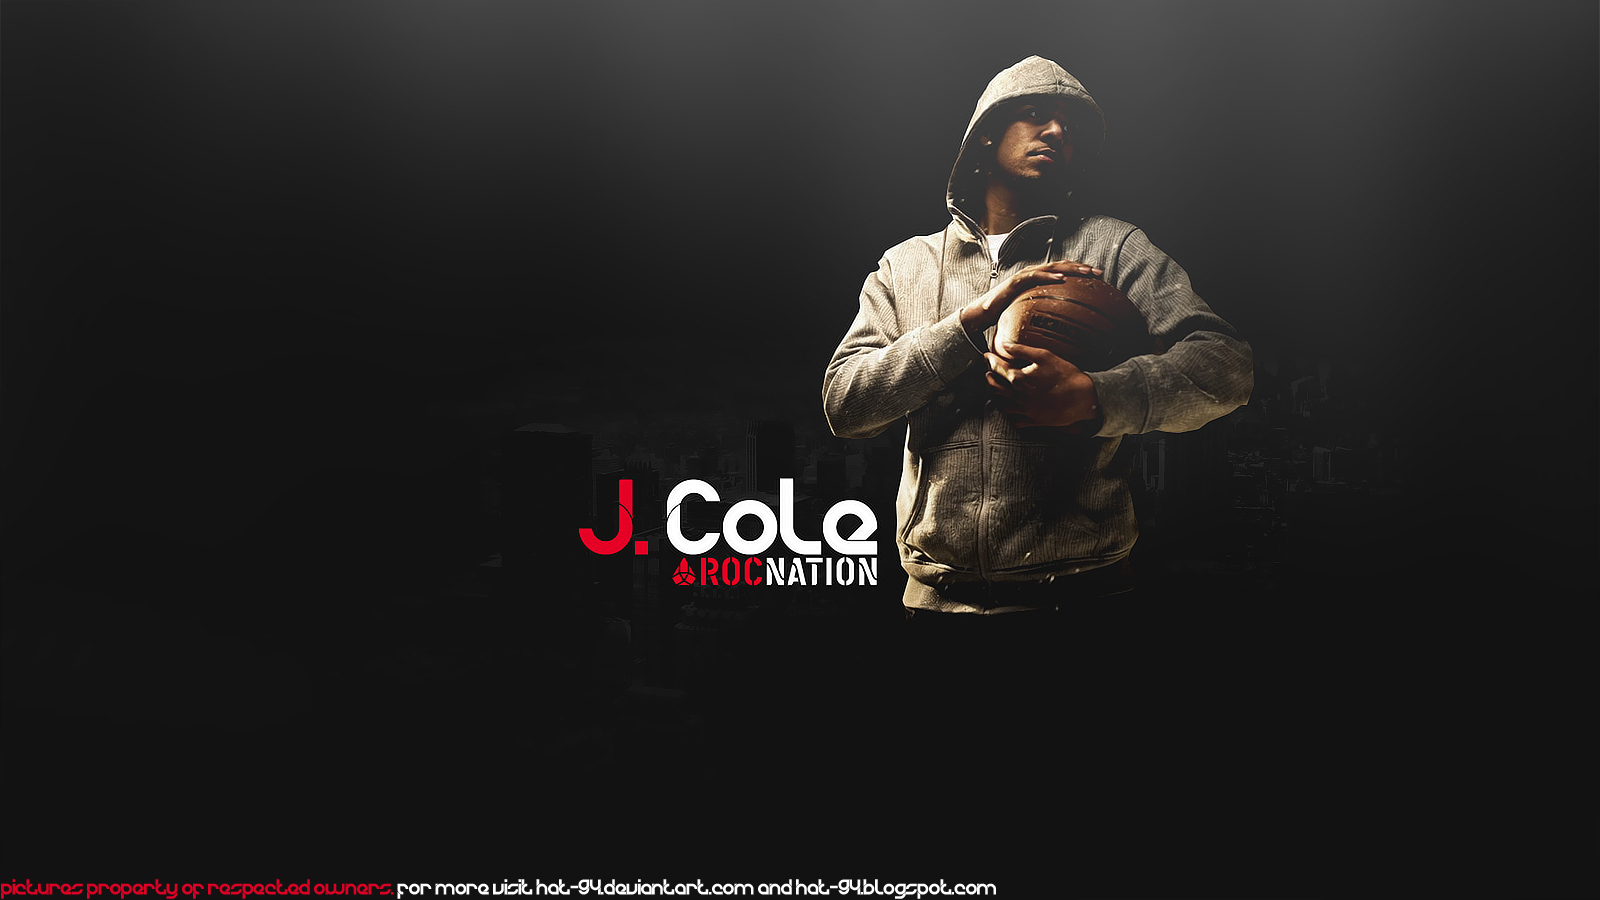 free wallpicz: J Cole Wallpaper For Iphone